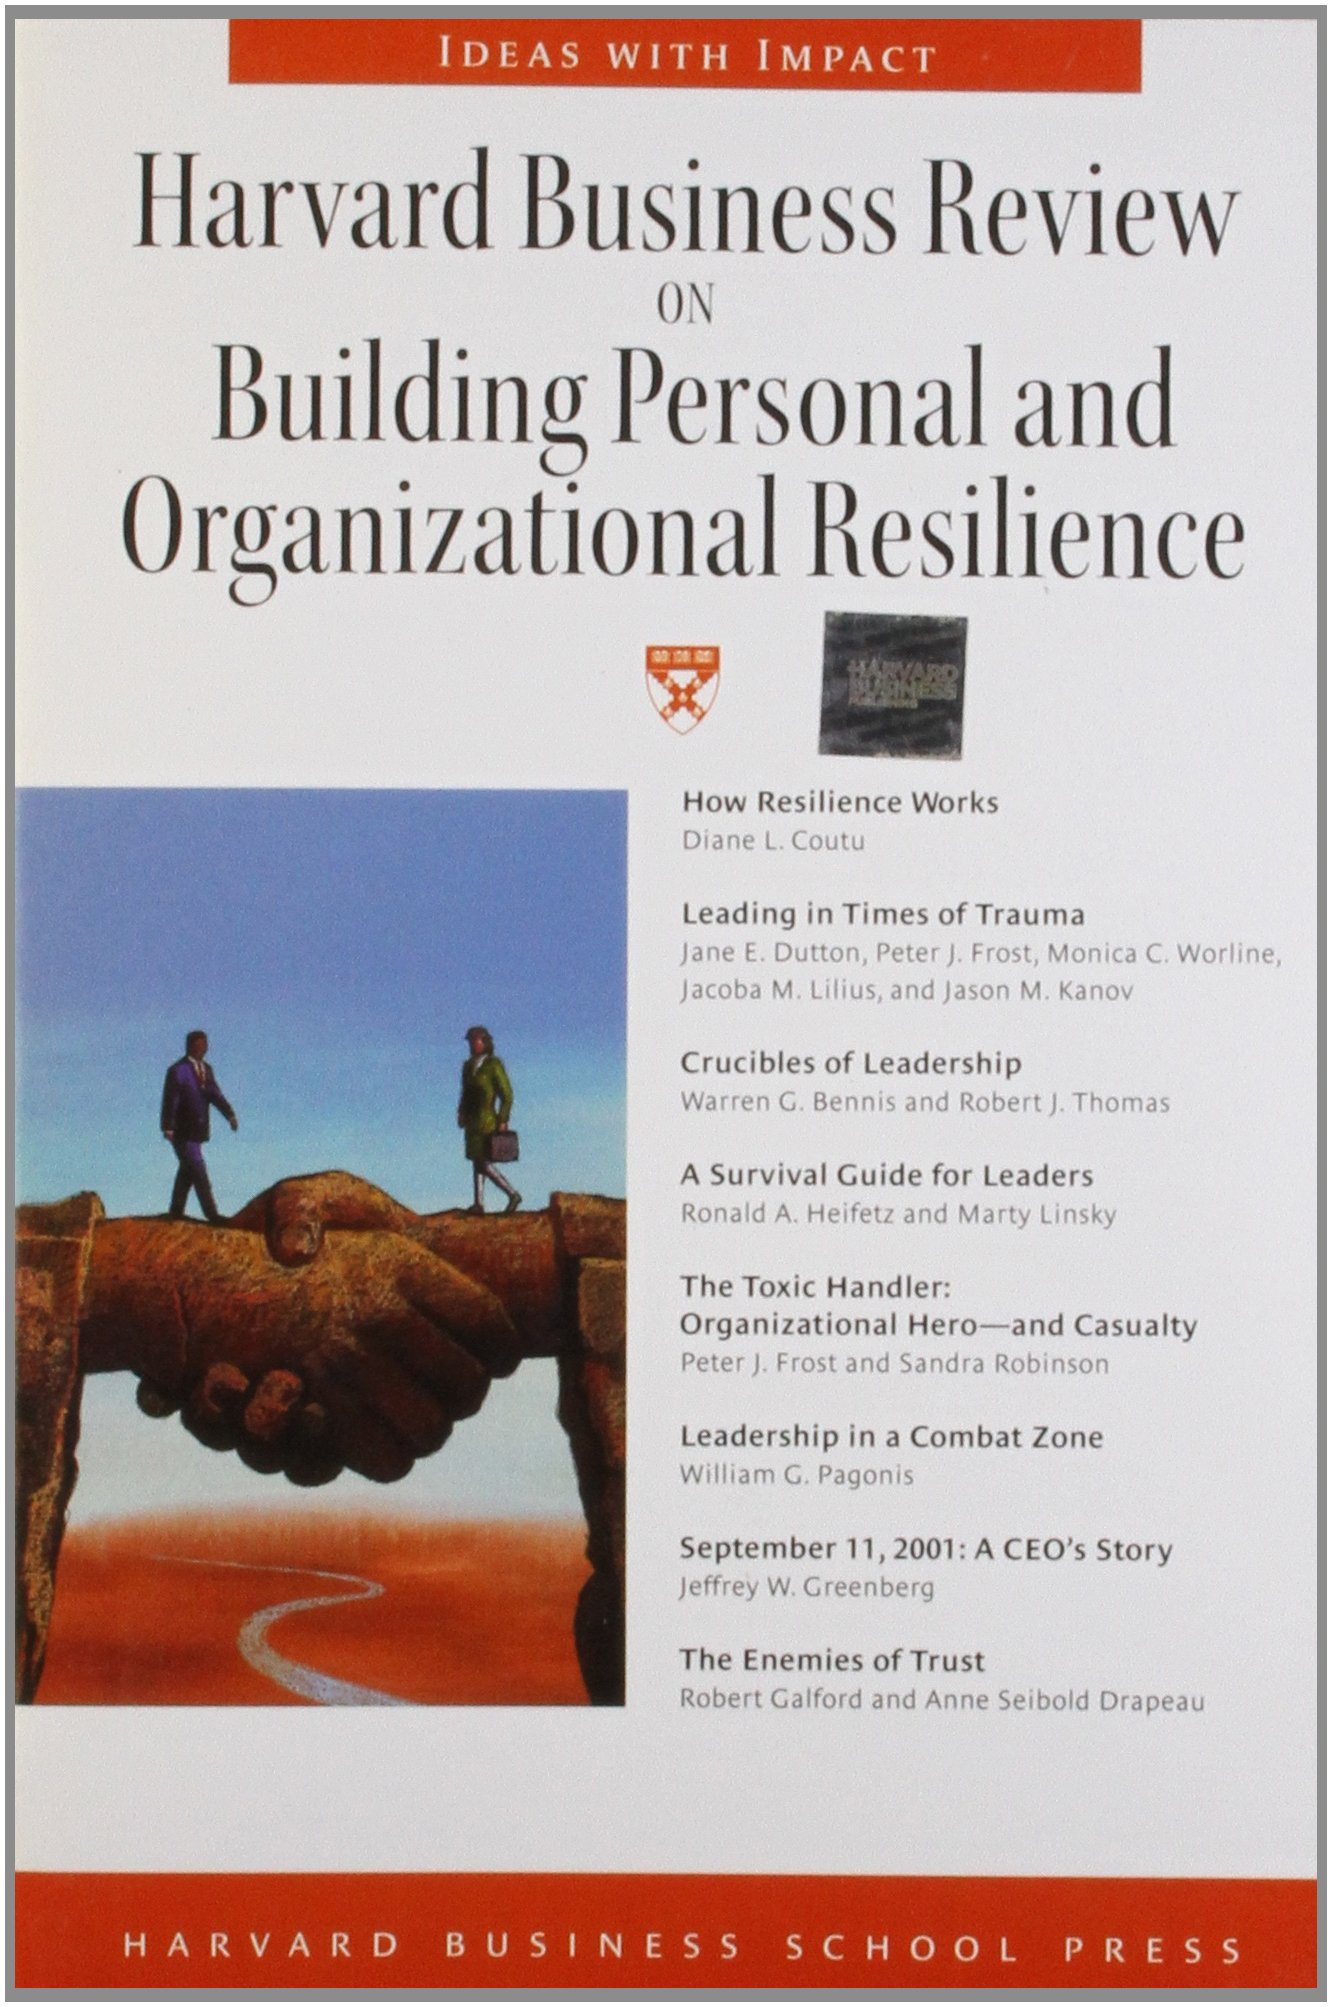 Harvard Business Review On Building Personal And Organizational  Harvard Business Review On Building Personal And Organizational Resilience  Harvard Business Review Paperback Series Harvard Business School Press